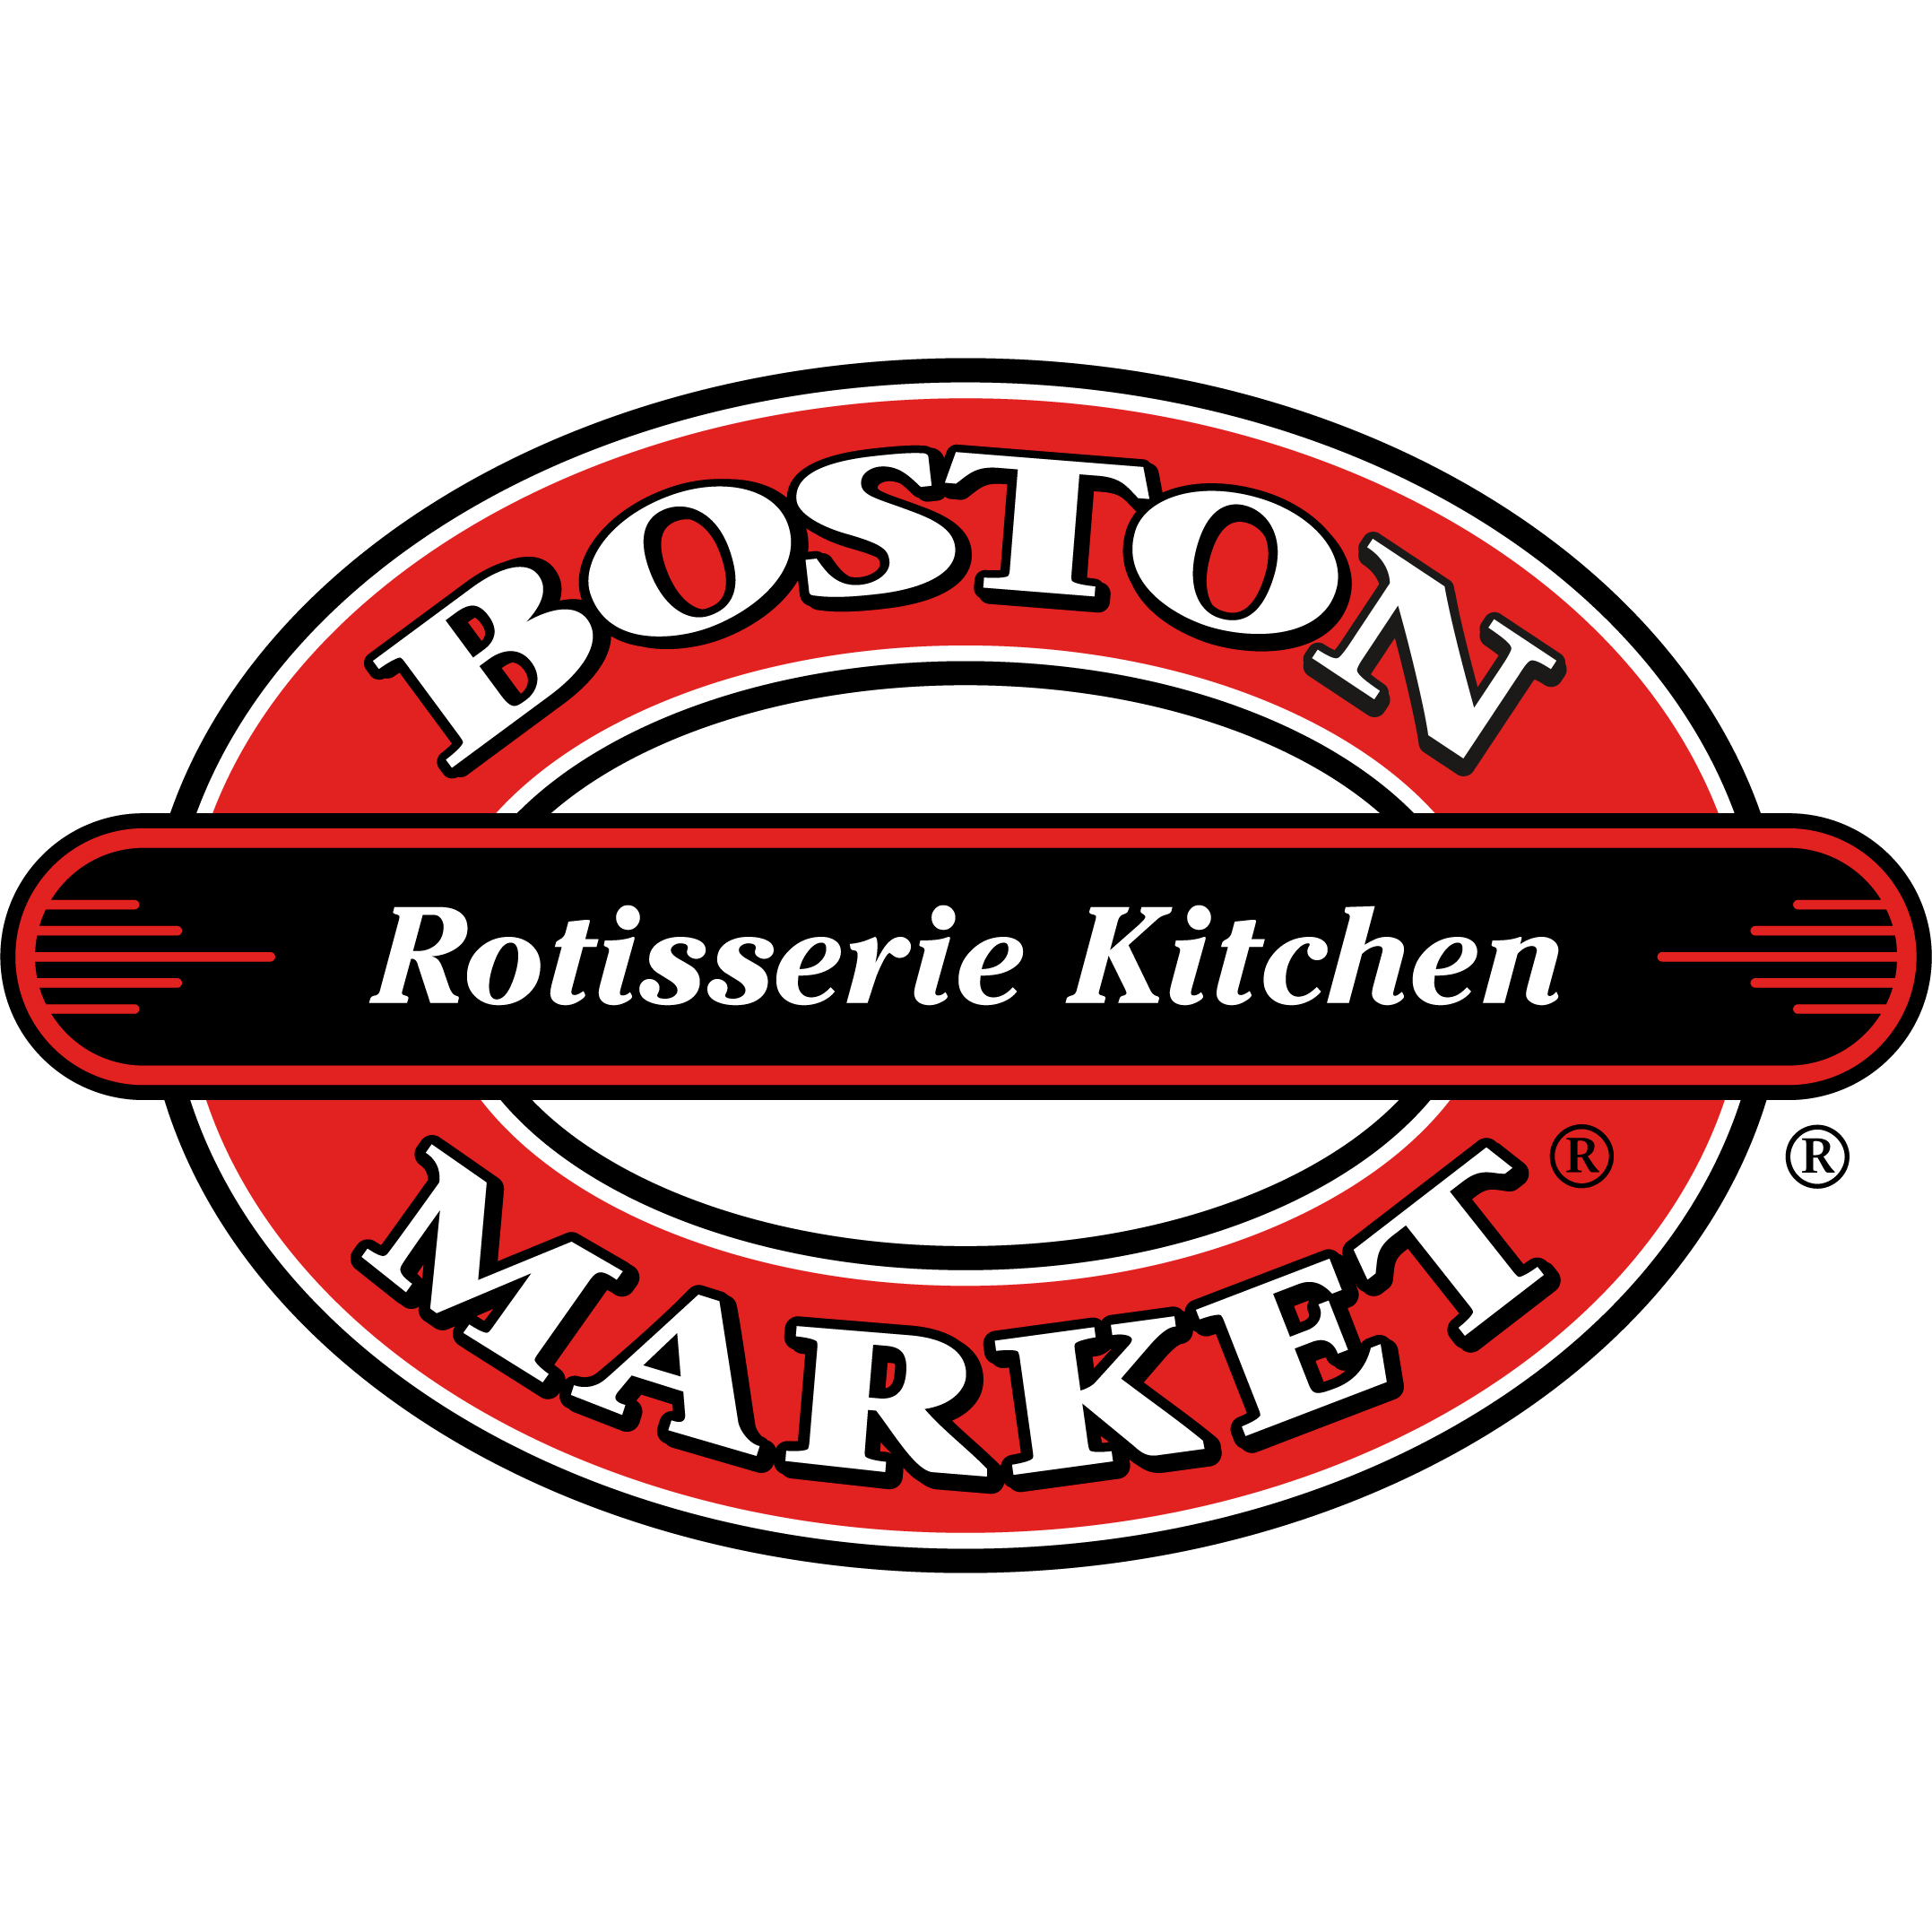 Boston Market - CLOSED